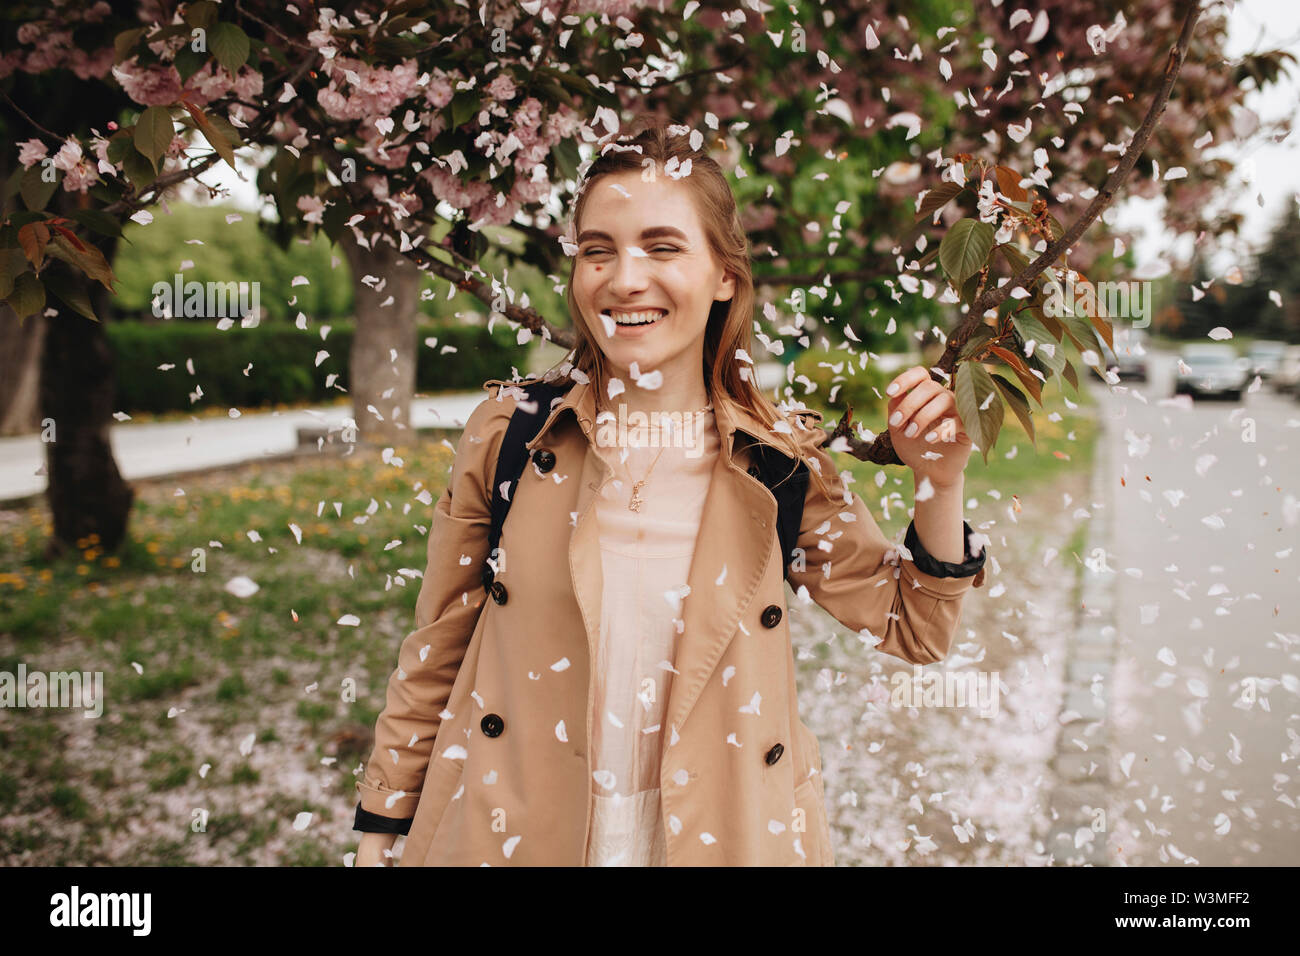 Smiling woman among falling petals from tree in bloom - Stock Image